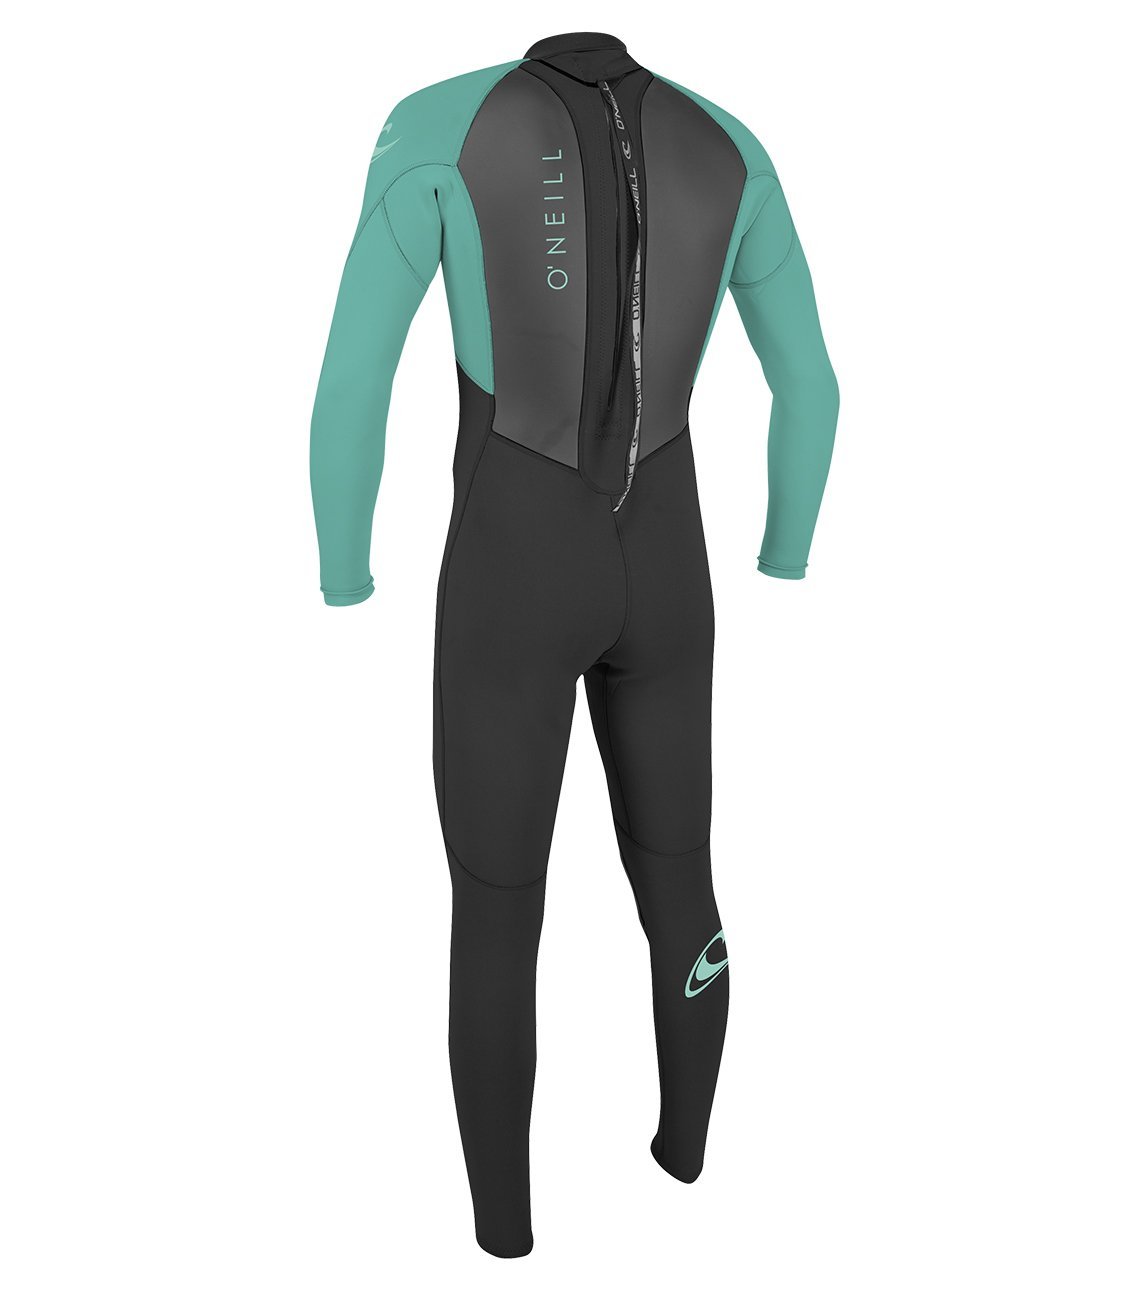 O'Neill Youth Reactor-2 3/2mm Back Zip Full Wetsuit, Black/Aqua, 6 by O'Neill Wetsuits (Image #3)